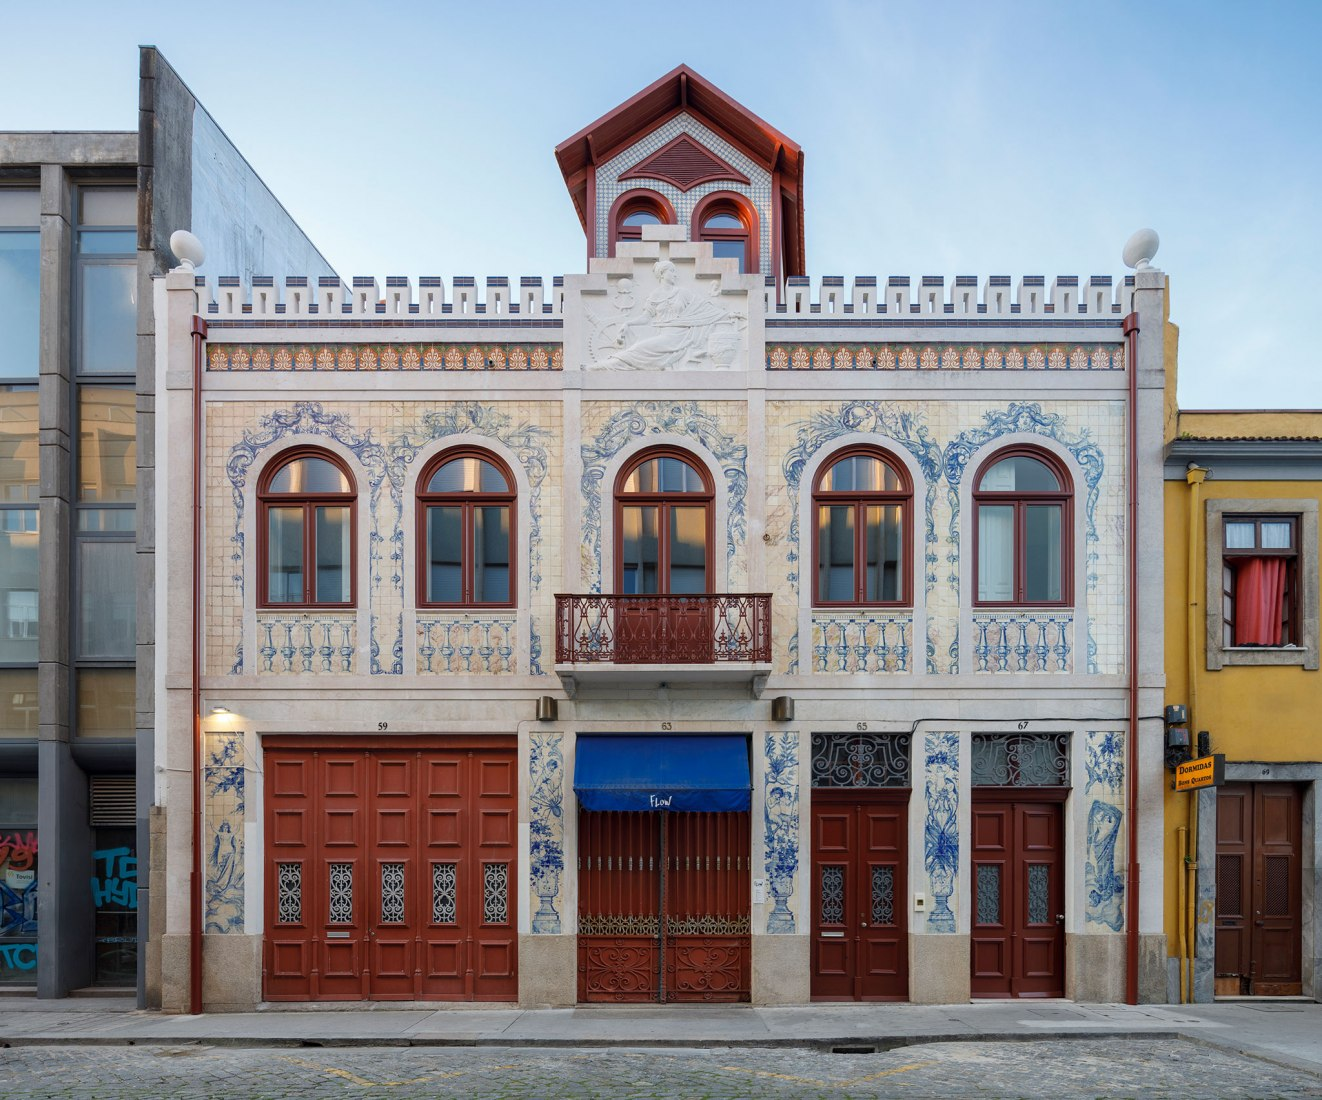 Devesas Factory Building by Anarchlab. Photograph by Ivo Tavares Studio